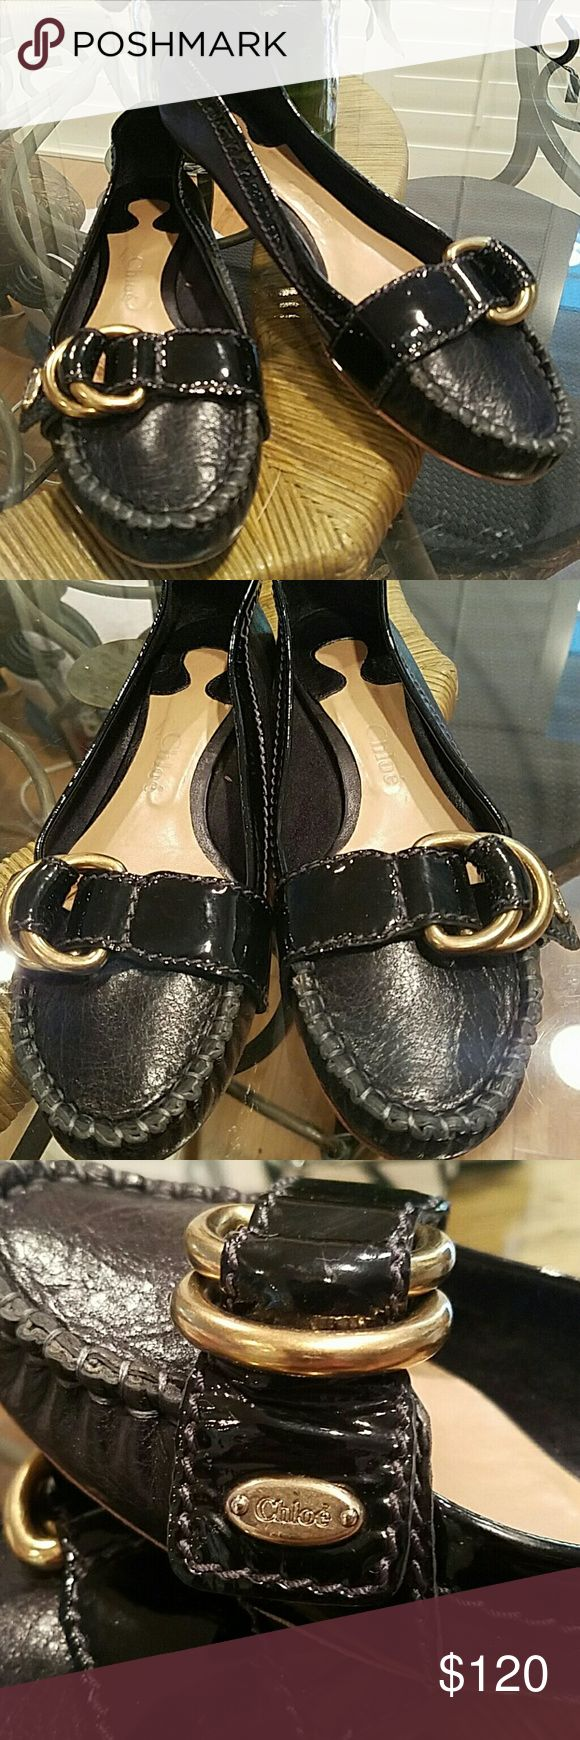 Chloe black leather flats, Sz 38 Black leather round-toe with patent leather trim throughout, gold-tone D-ring closure embellishment Comfortable! Great condition! Chloe Shoes Flats & Loafers